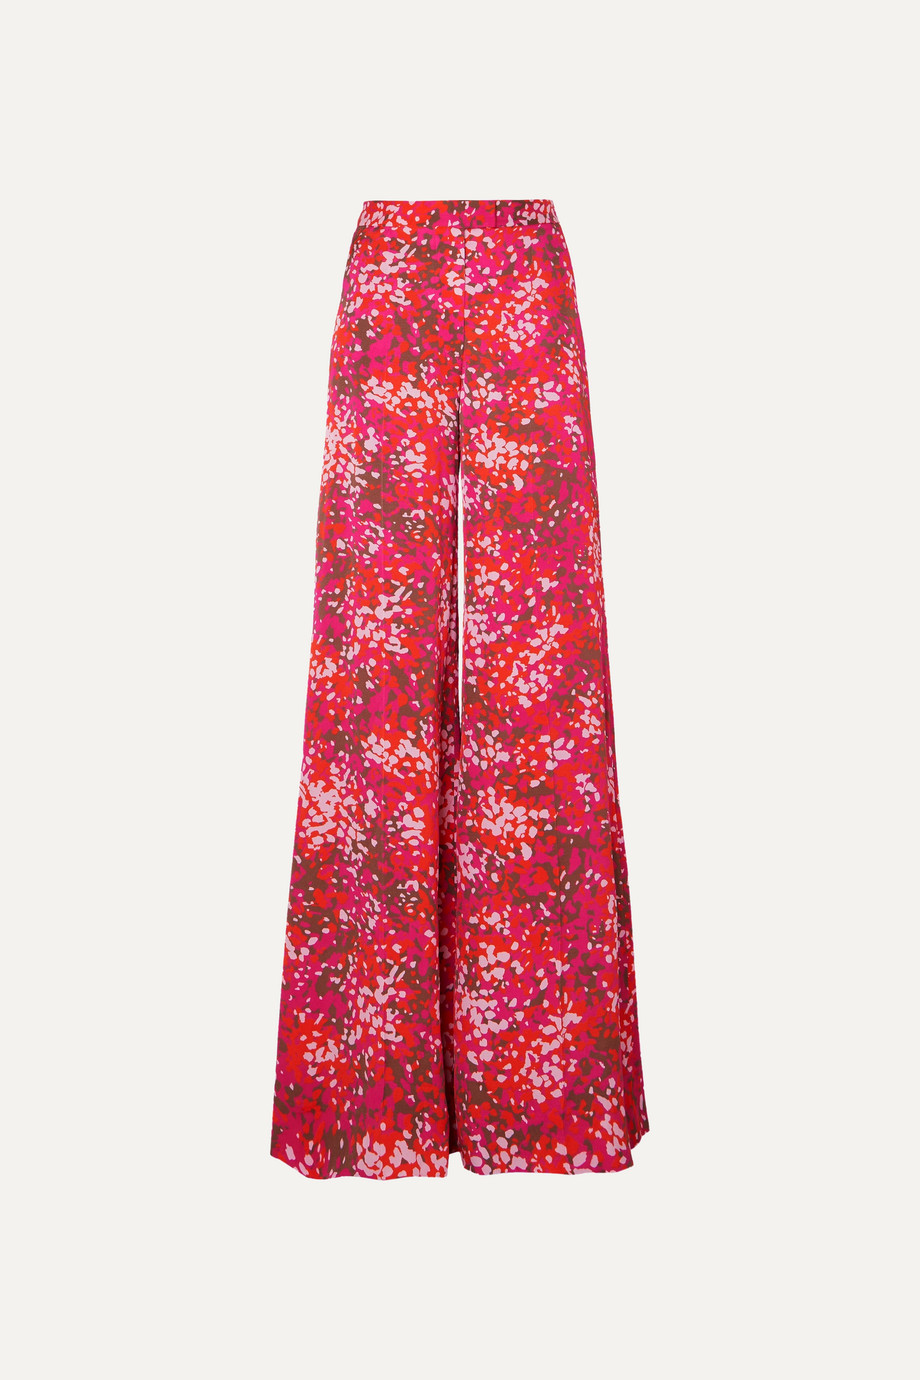 Stella McCartney + NET SUSTAIN printed crepe de chine wide-leg pants